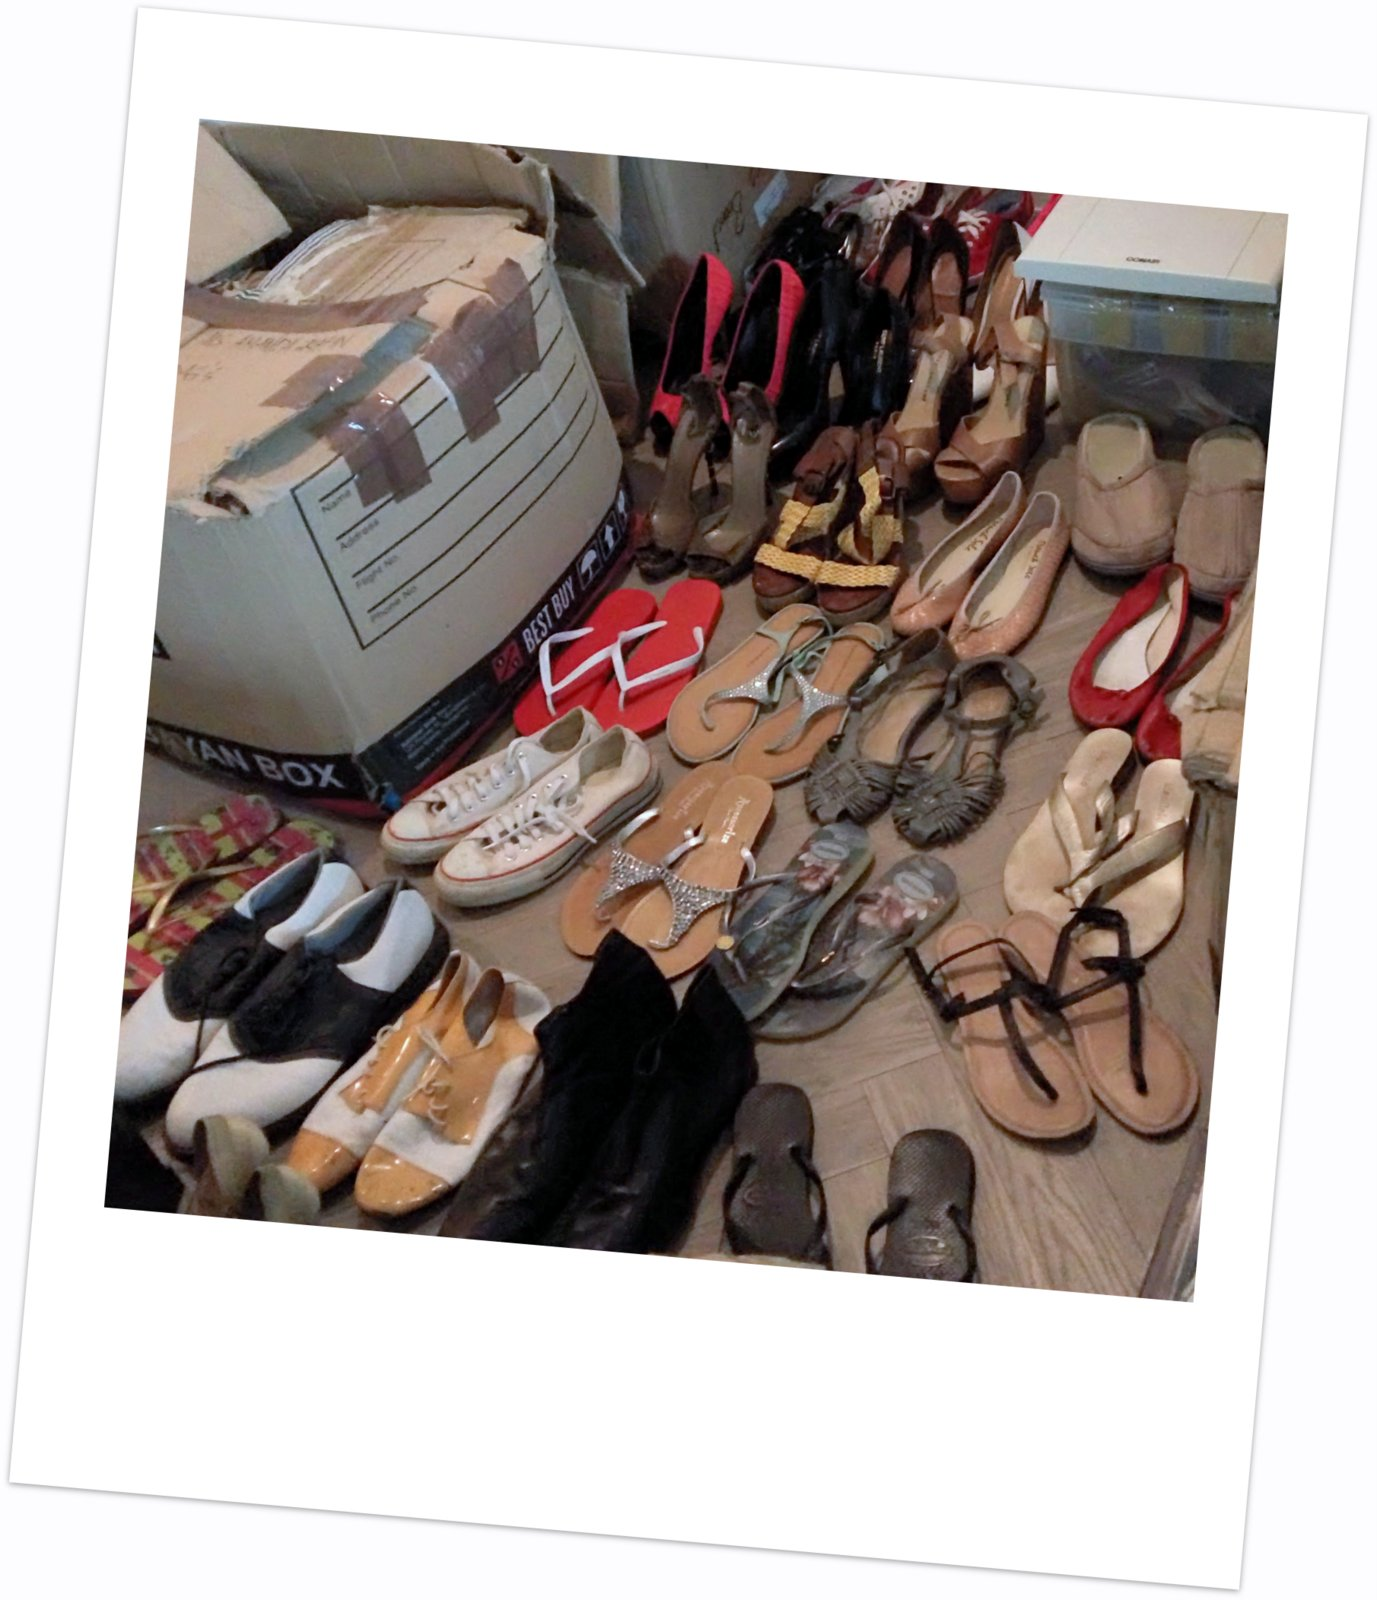 1-how to store shoes.jpg